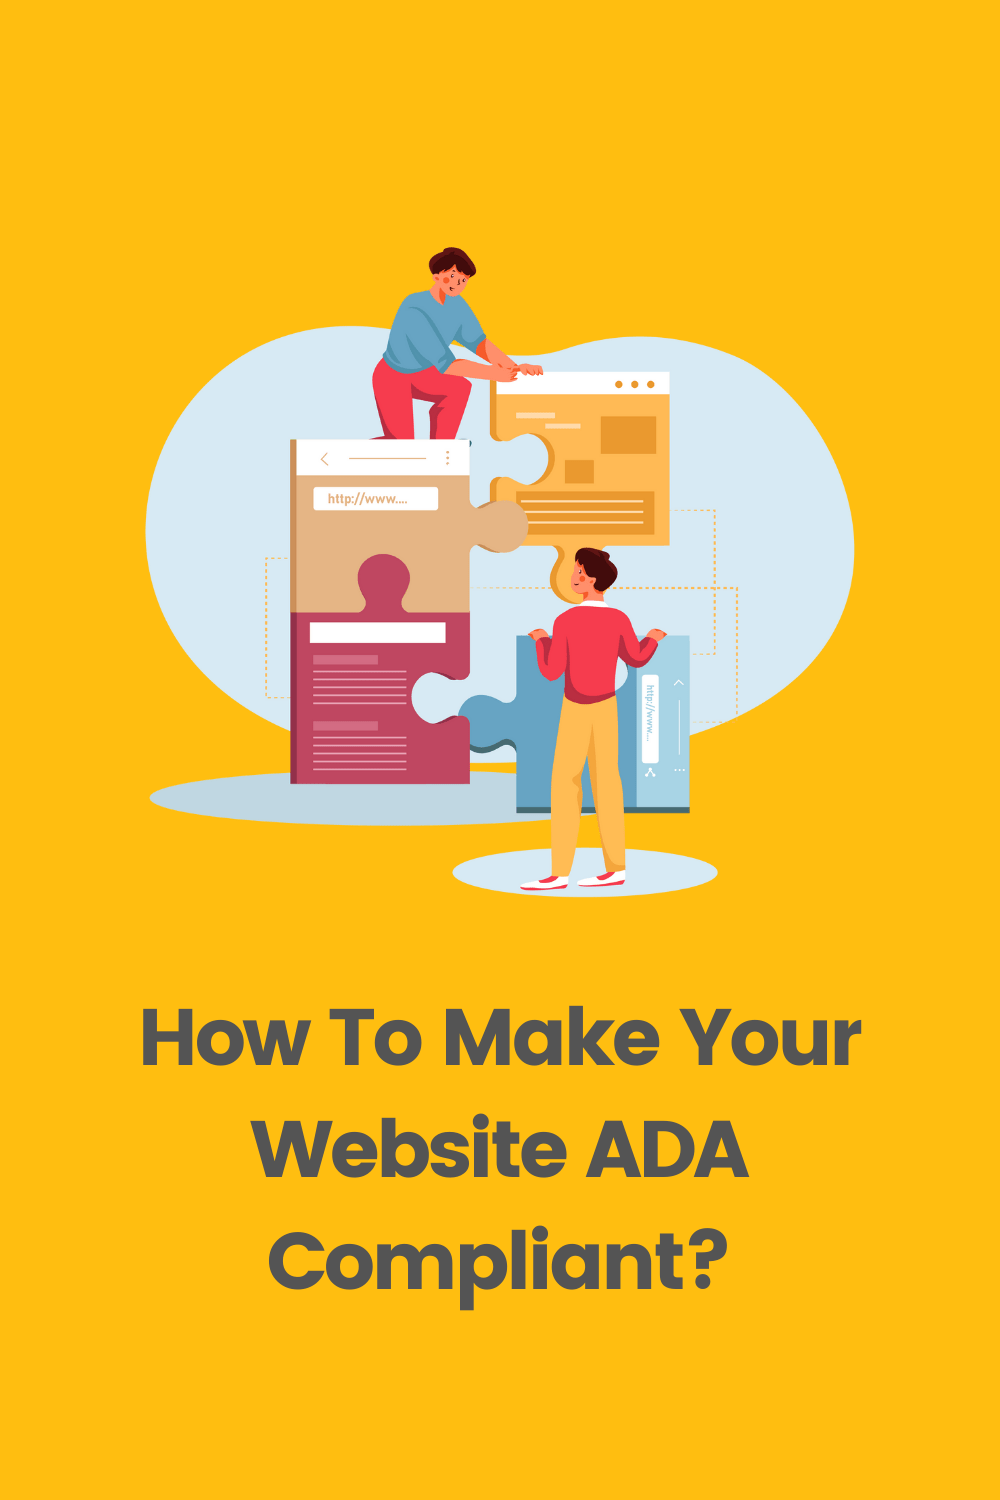 There are a few other important things that you must address to ensure your website is ADA compliant. But for now, let's take a step back and understand what it means for a website to be ADA compliant. via @scopedesign